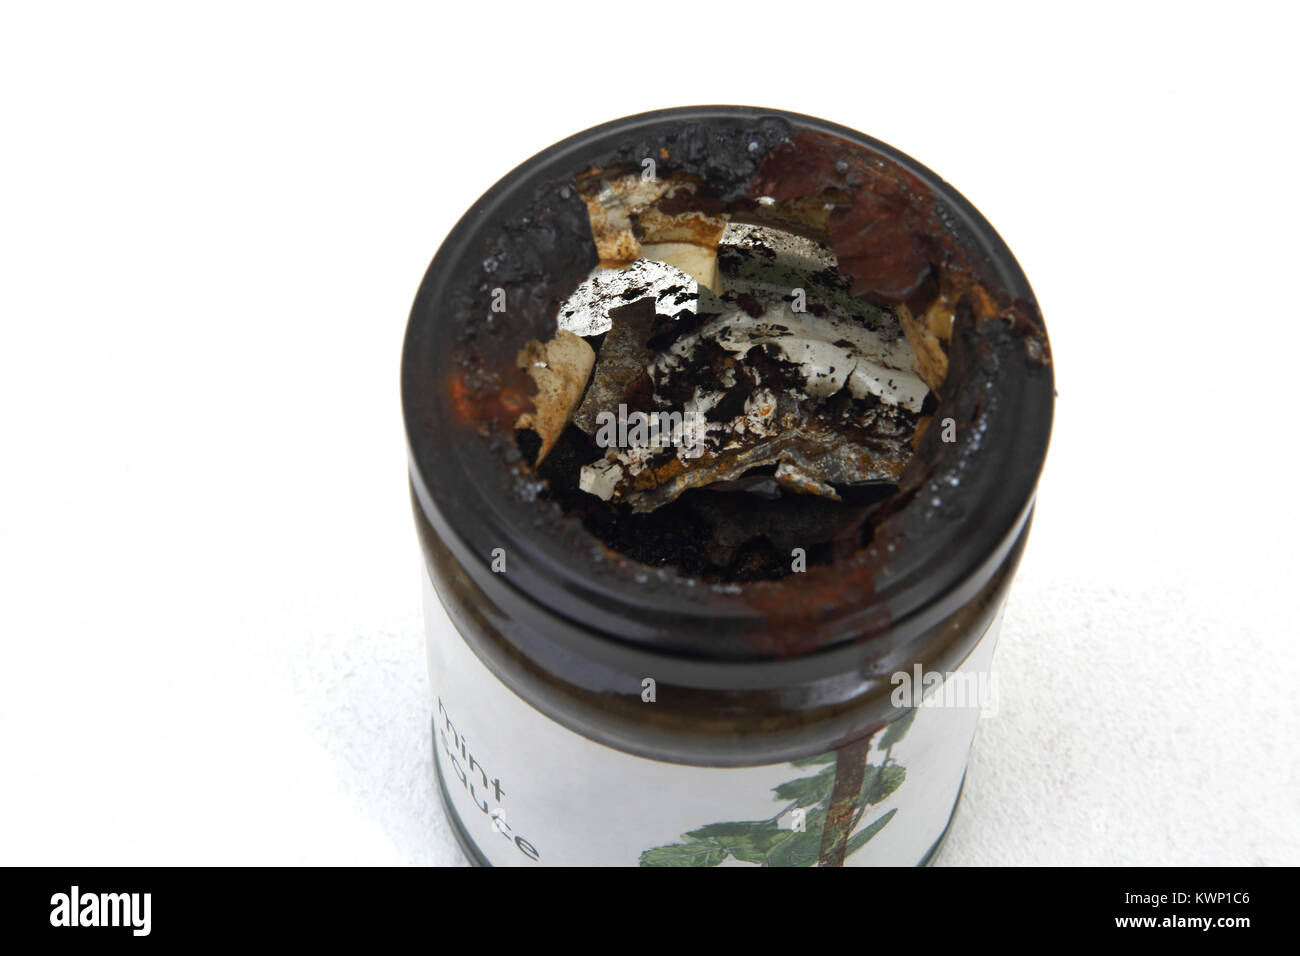 Old Jar Of Mint Sauce With Corroded Lid - Stock Image